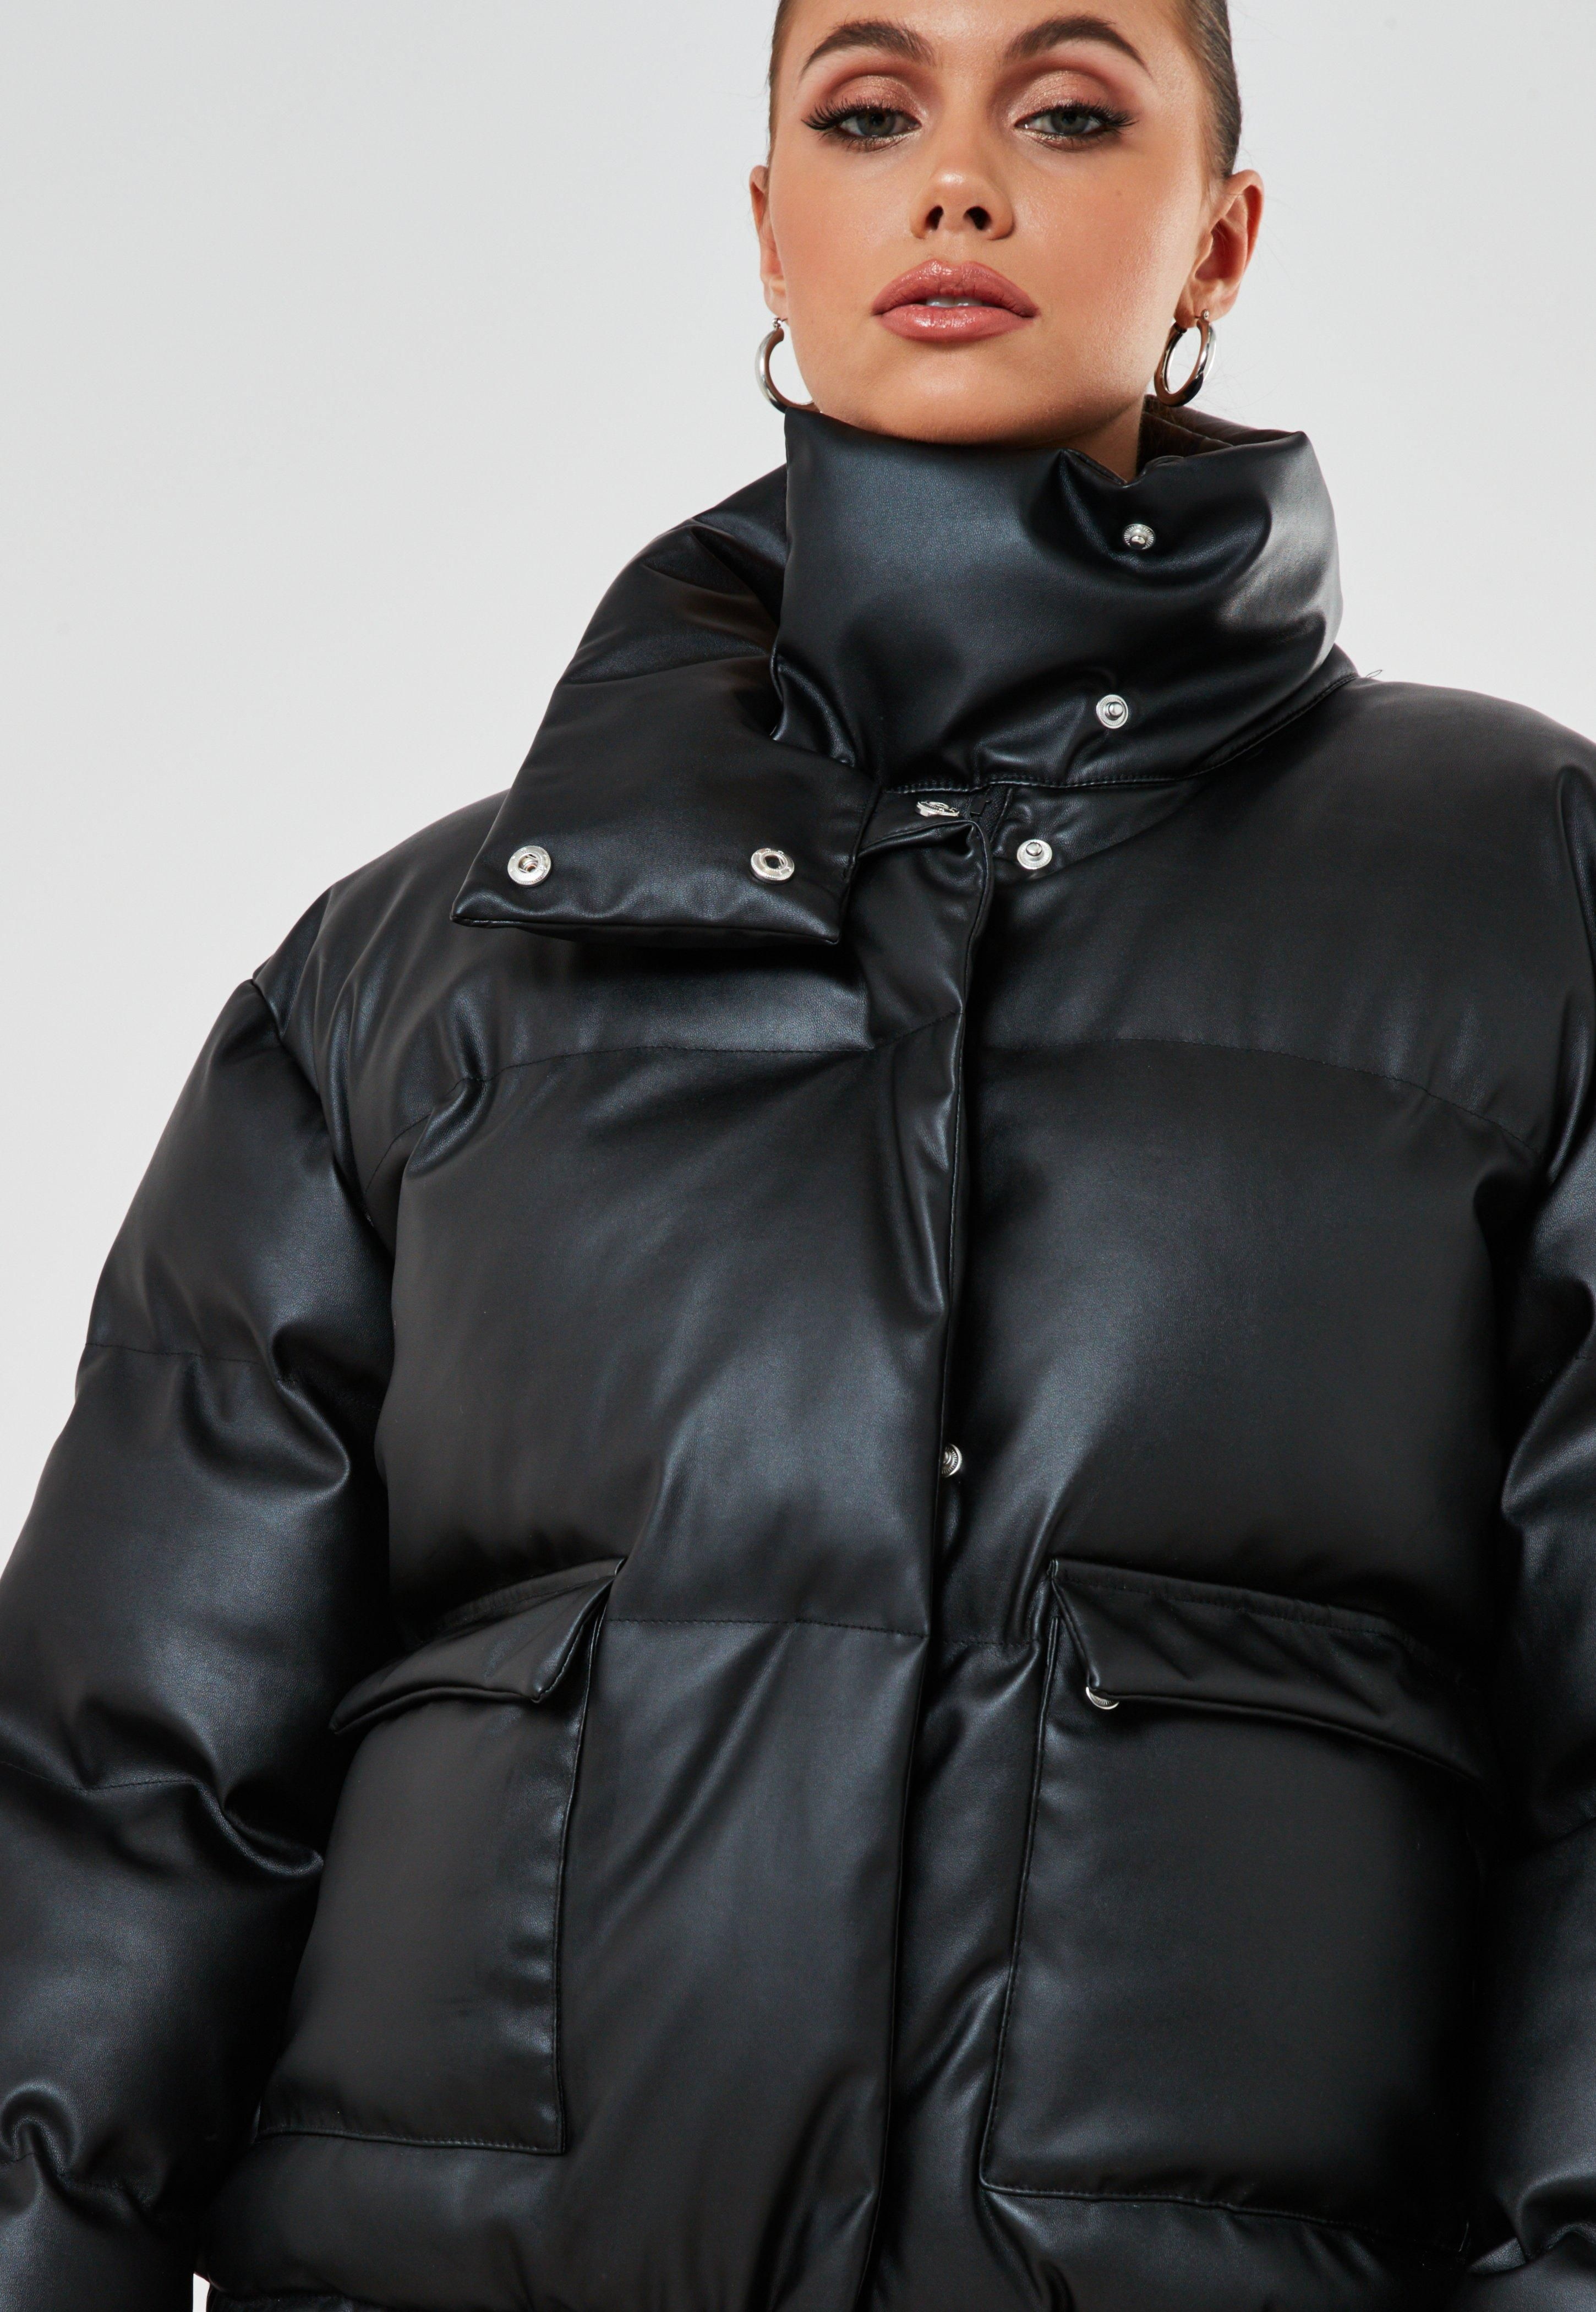 Black Faux Leather Puffer Jacket Sponsored Faux Sponsored Black Leather Puffer Jacket Outfit Puffer Jacket Women Leather Puffer Jacket [ 4200 x 2900 Pixel ]